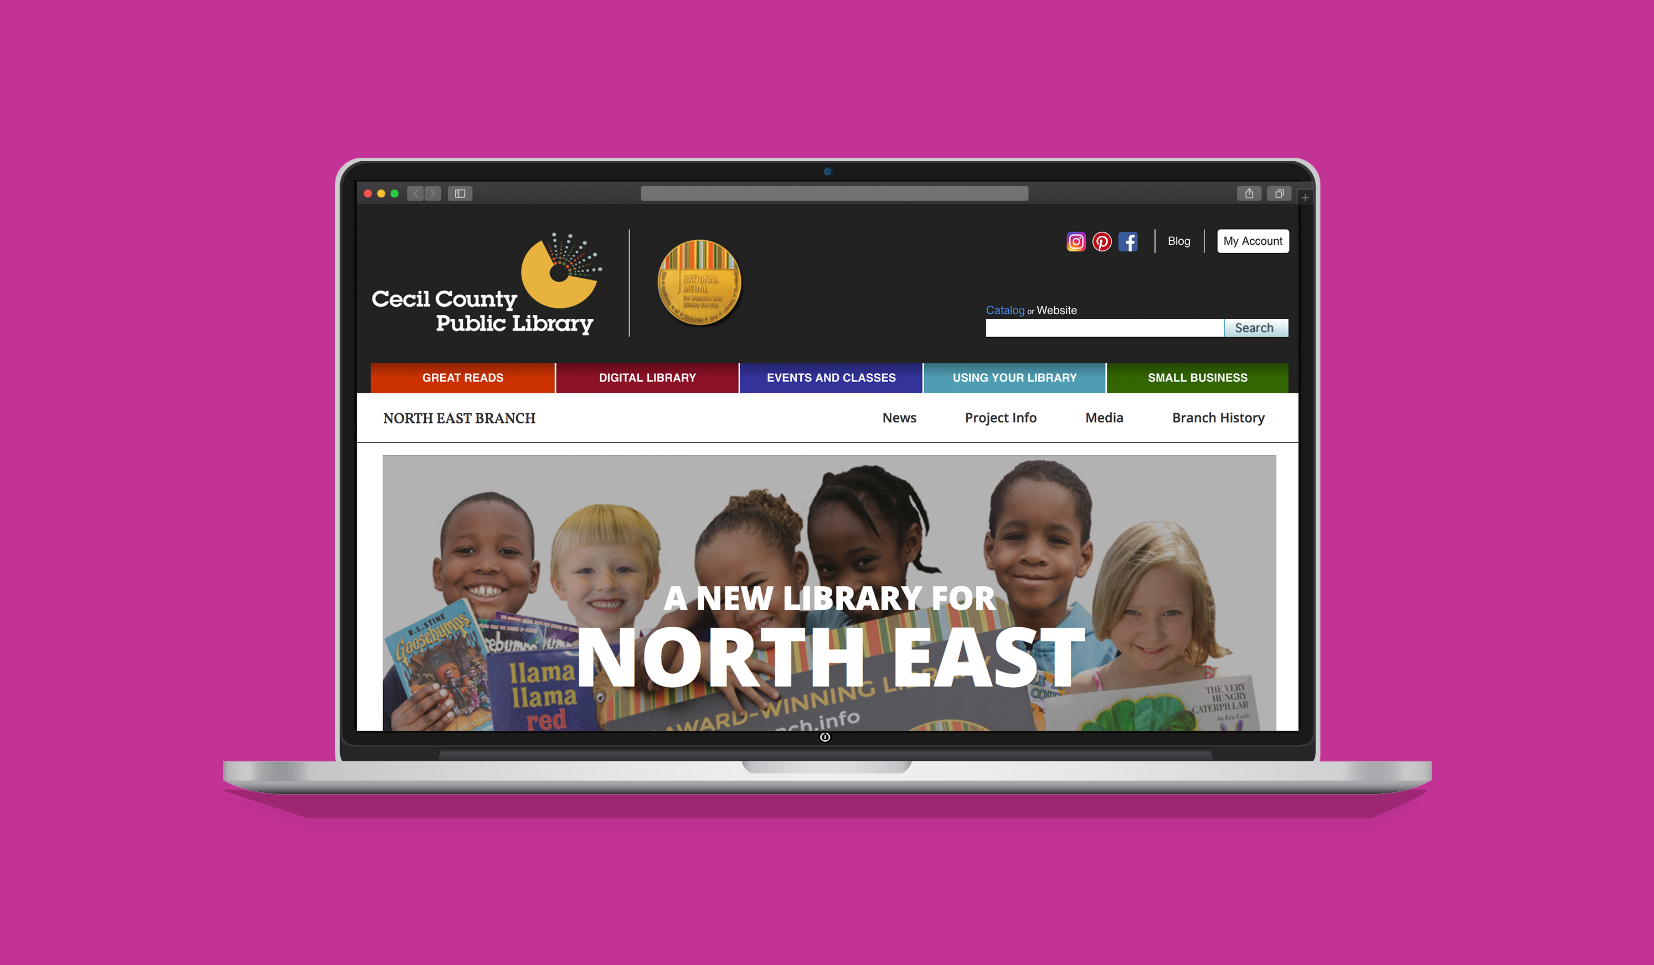 Propr Agency's Cecil County Public Library North East Web Design & Development